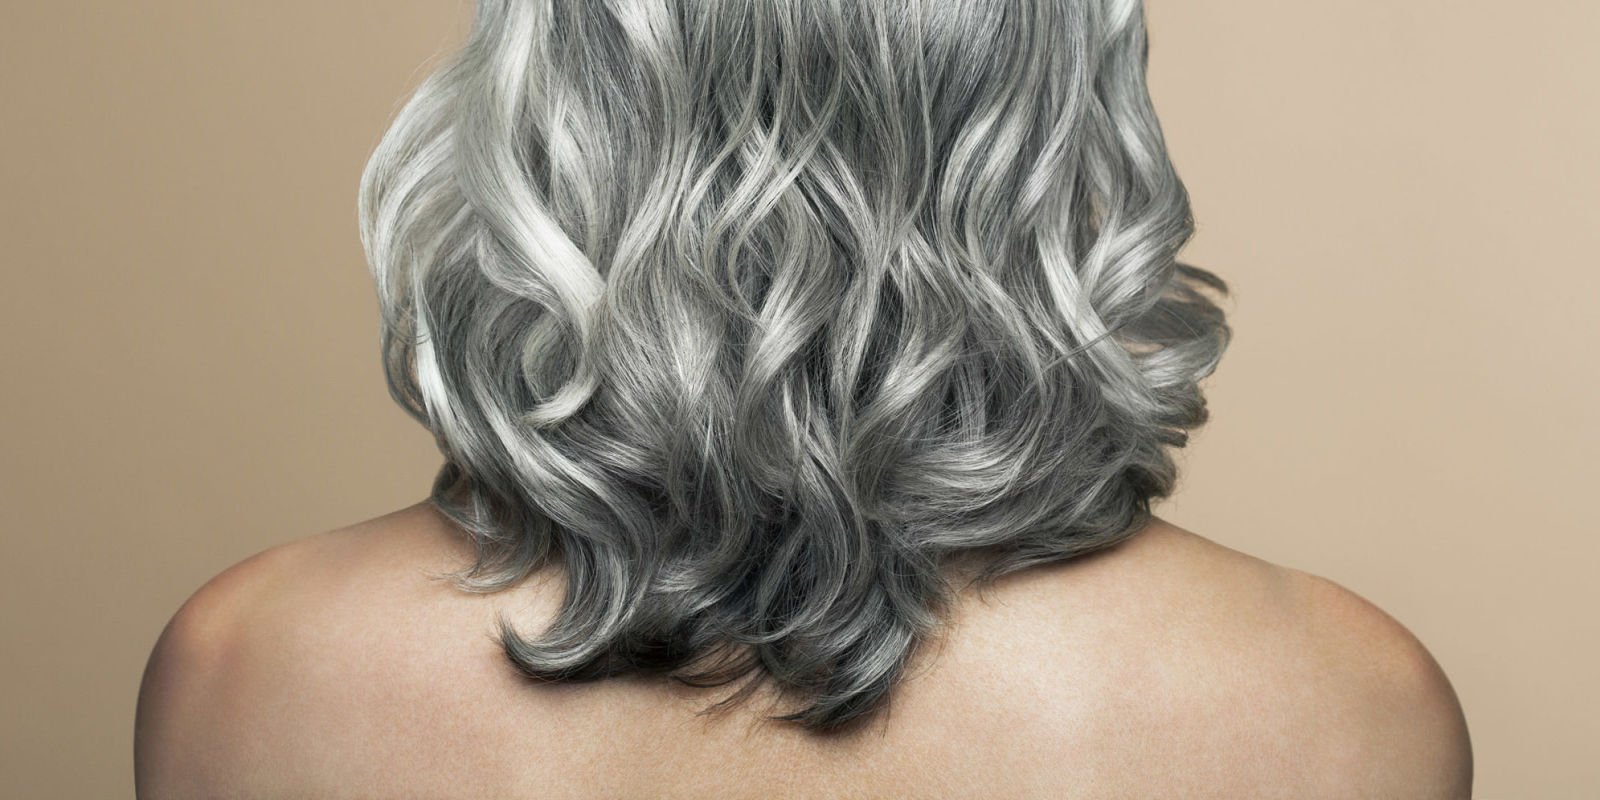 landscape 1449870388 gray hair woman